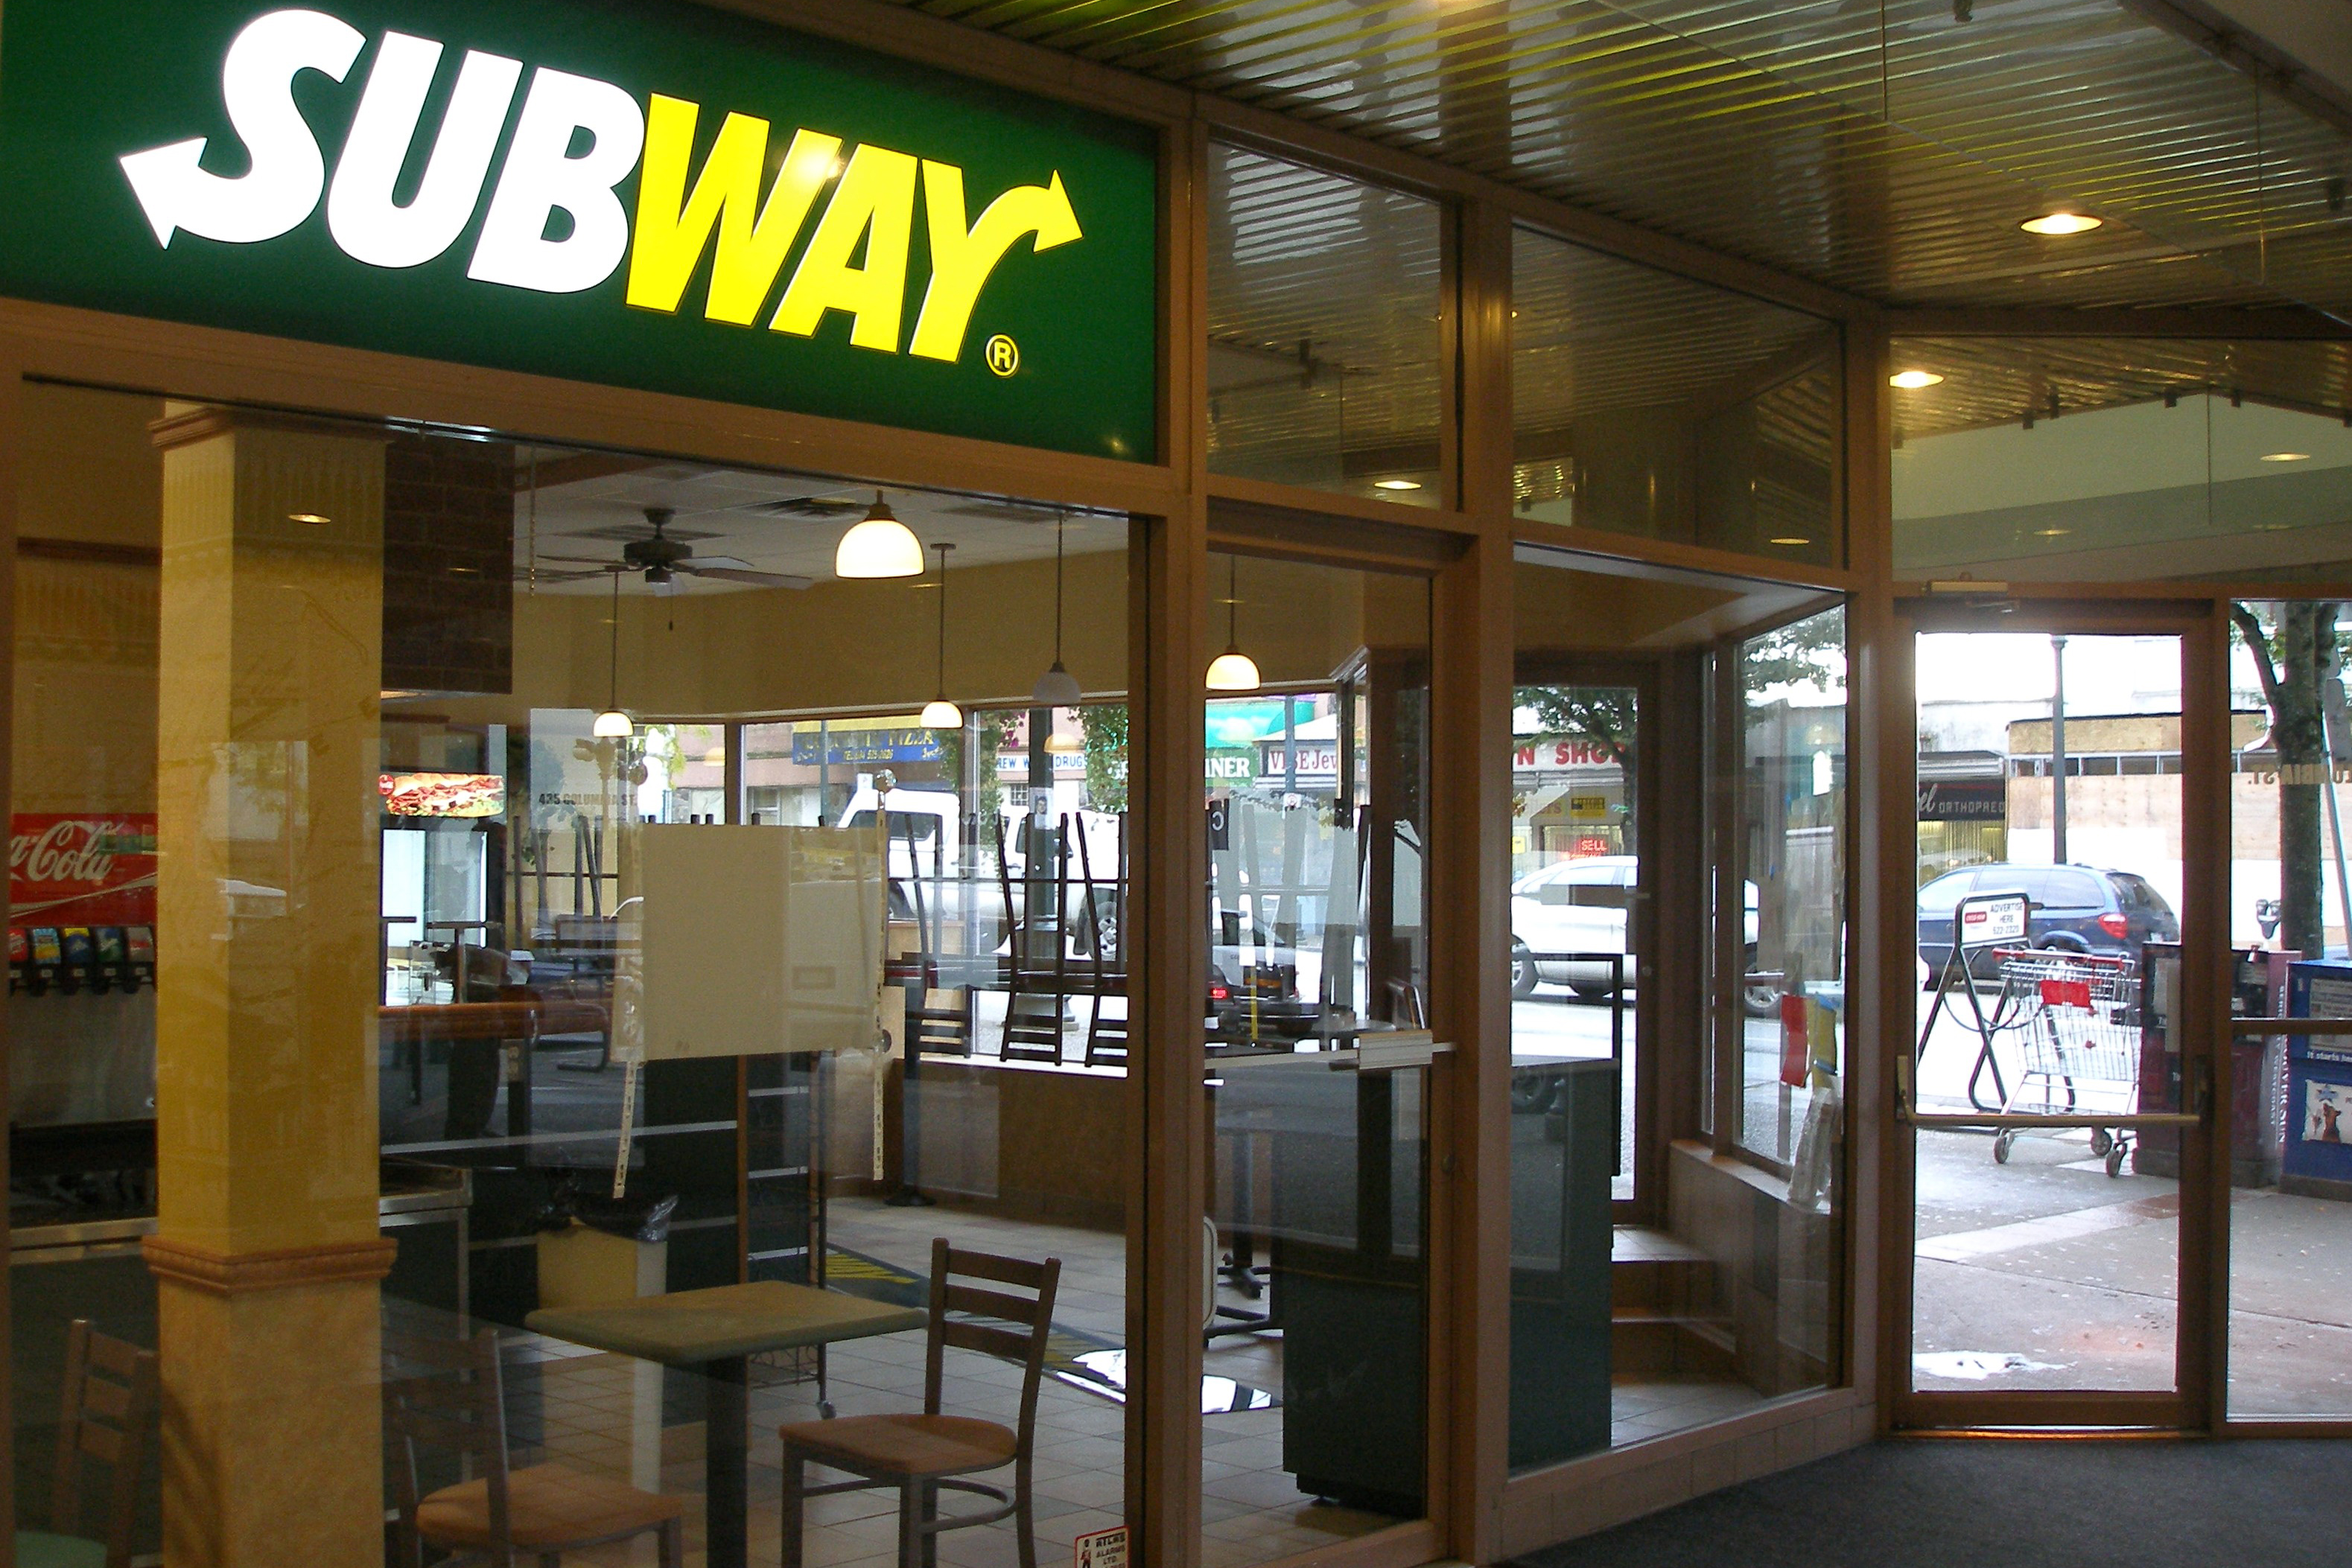 A central Indiana man is suing a Subway where he used to work, claiming he was fired for admitting he was HIV positive.